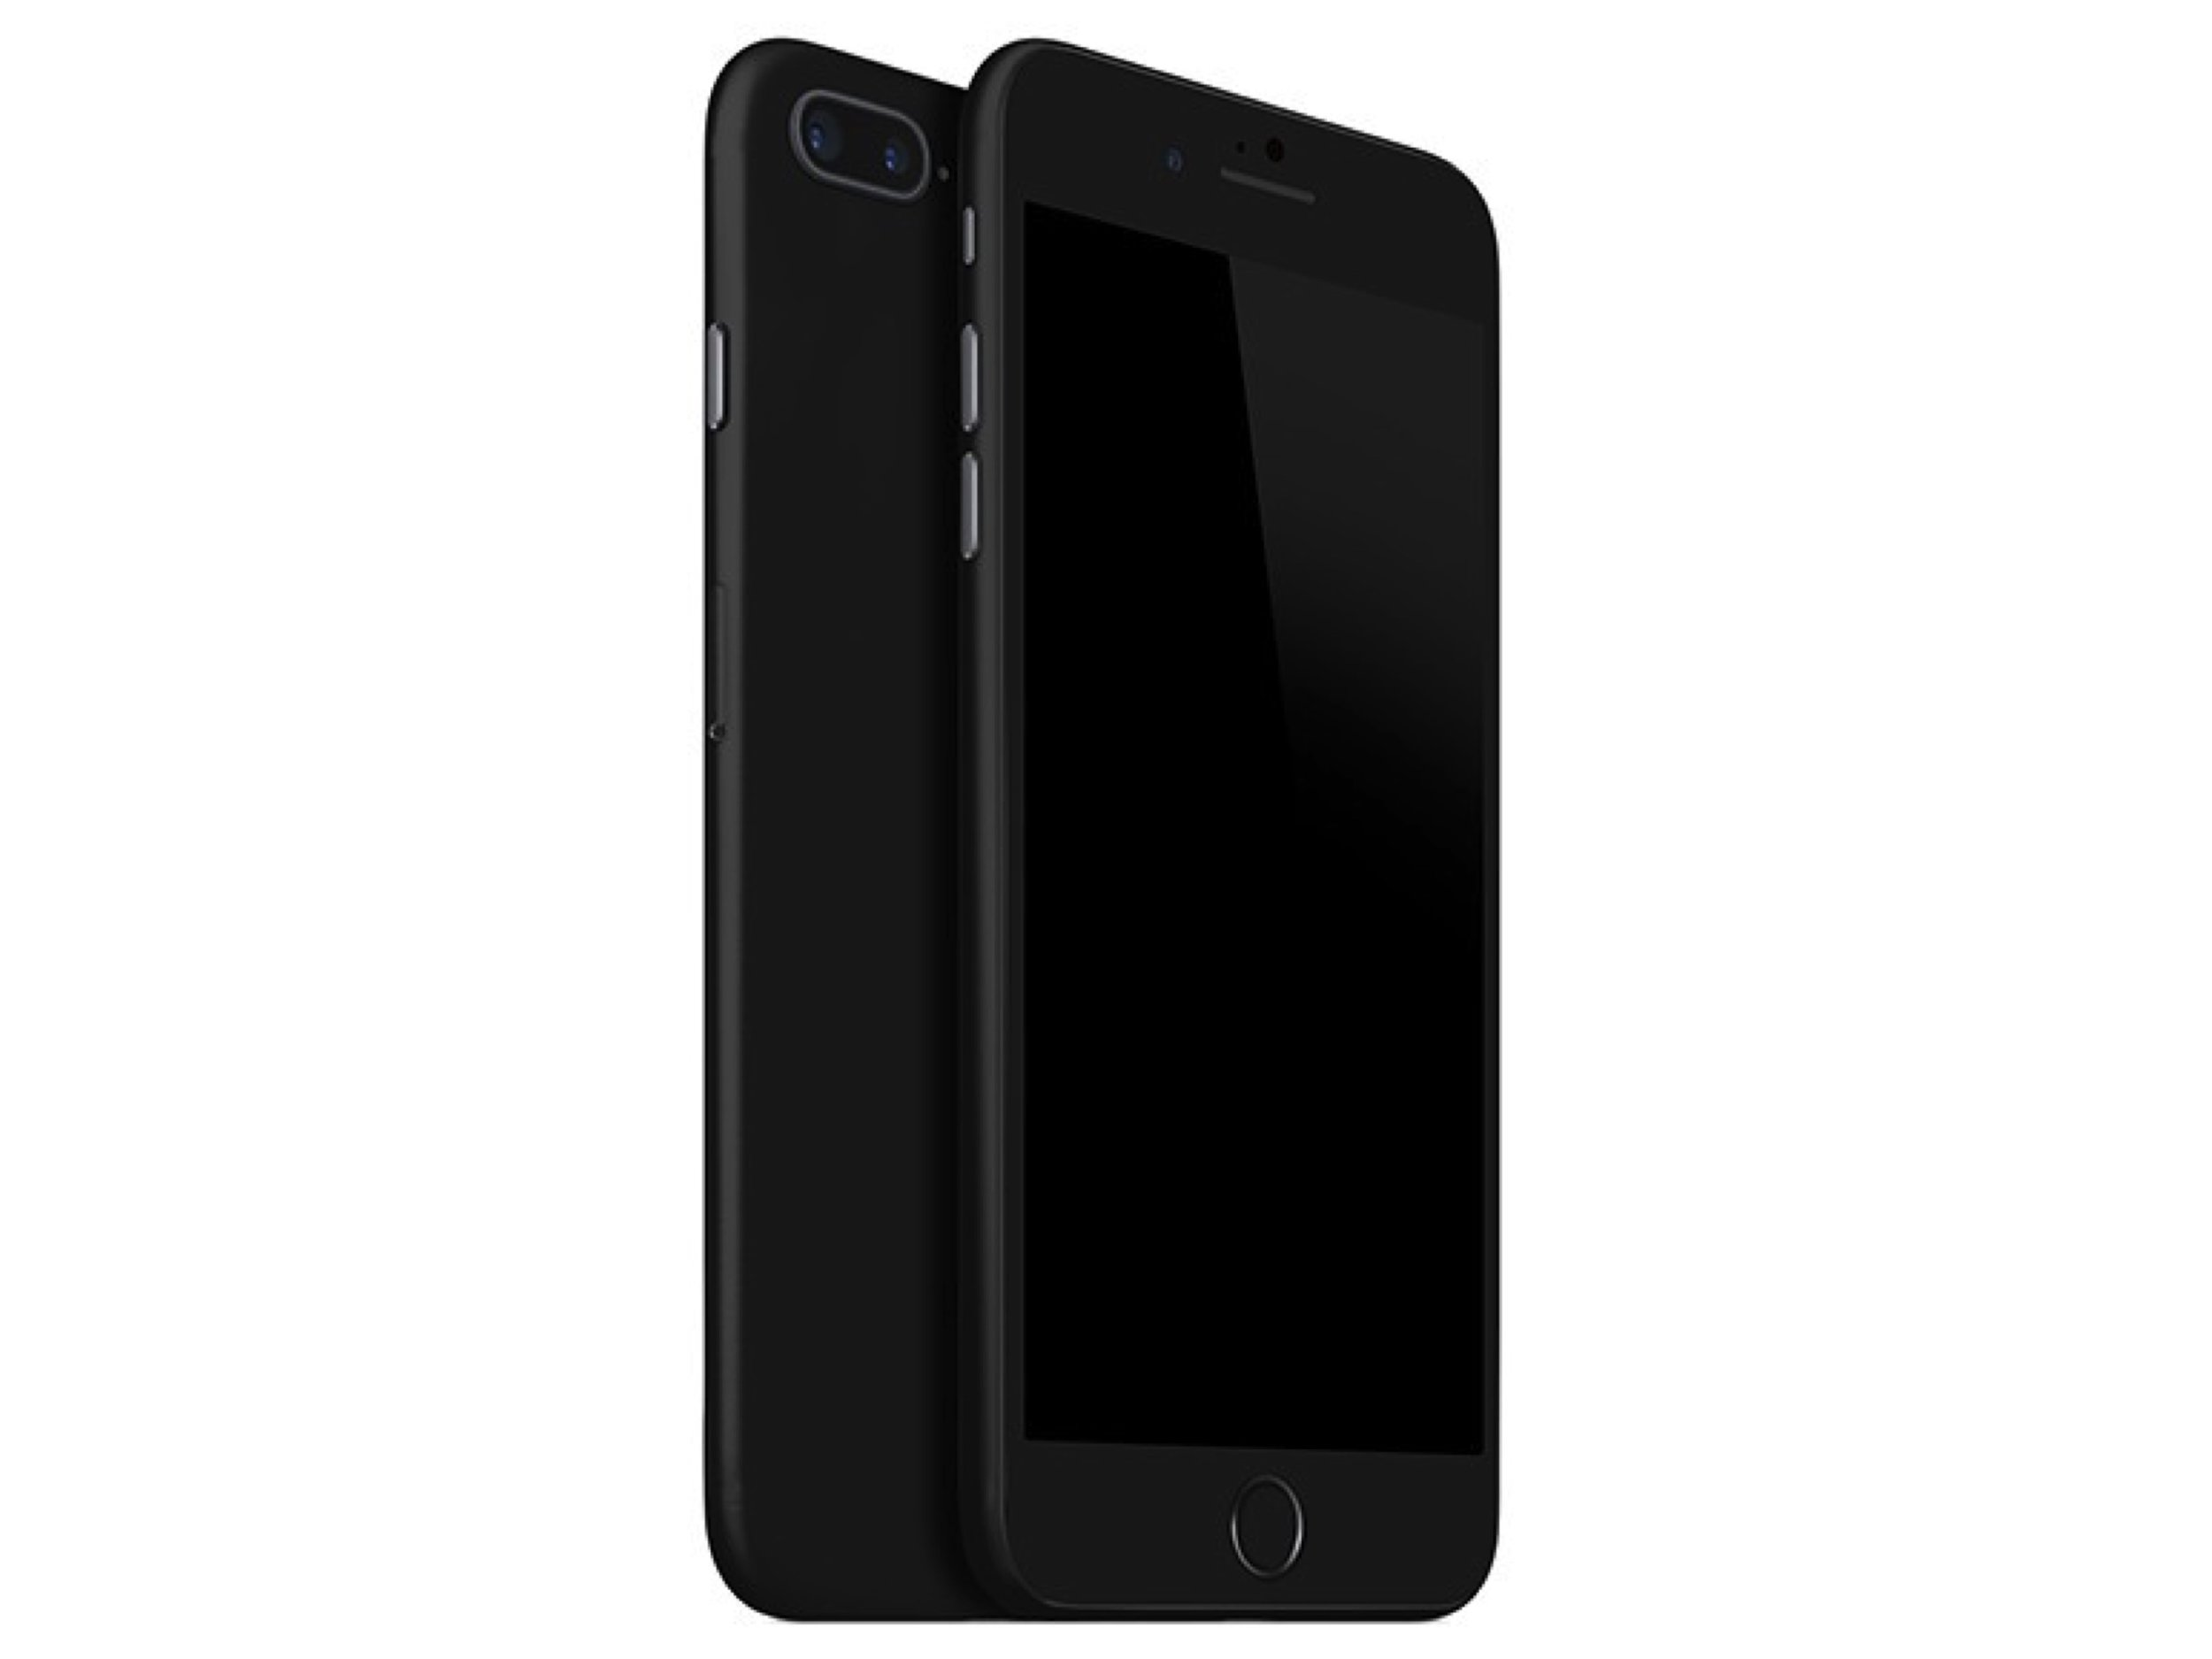 iPhone 7 Plus - For Navi, pictures, videos, internet and calls